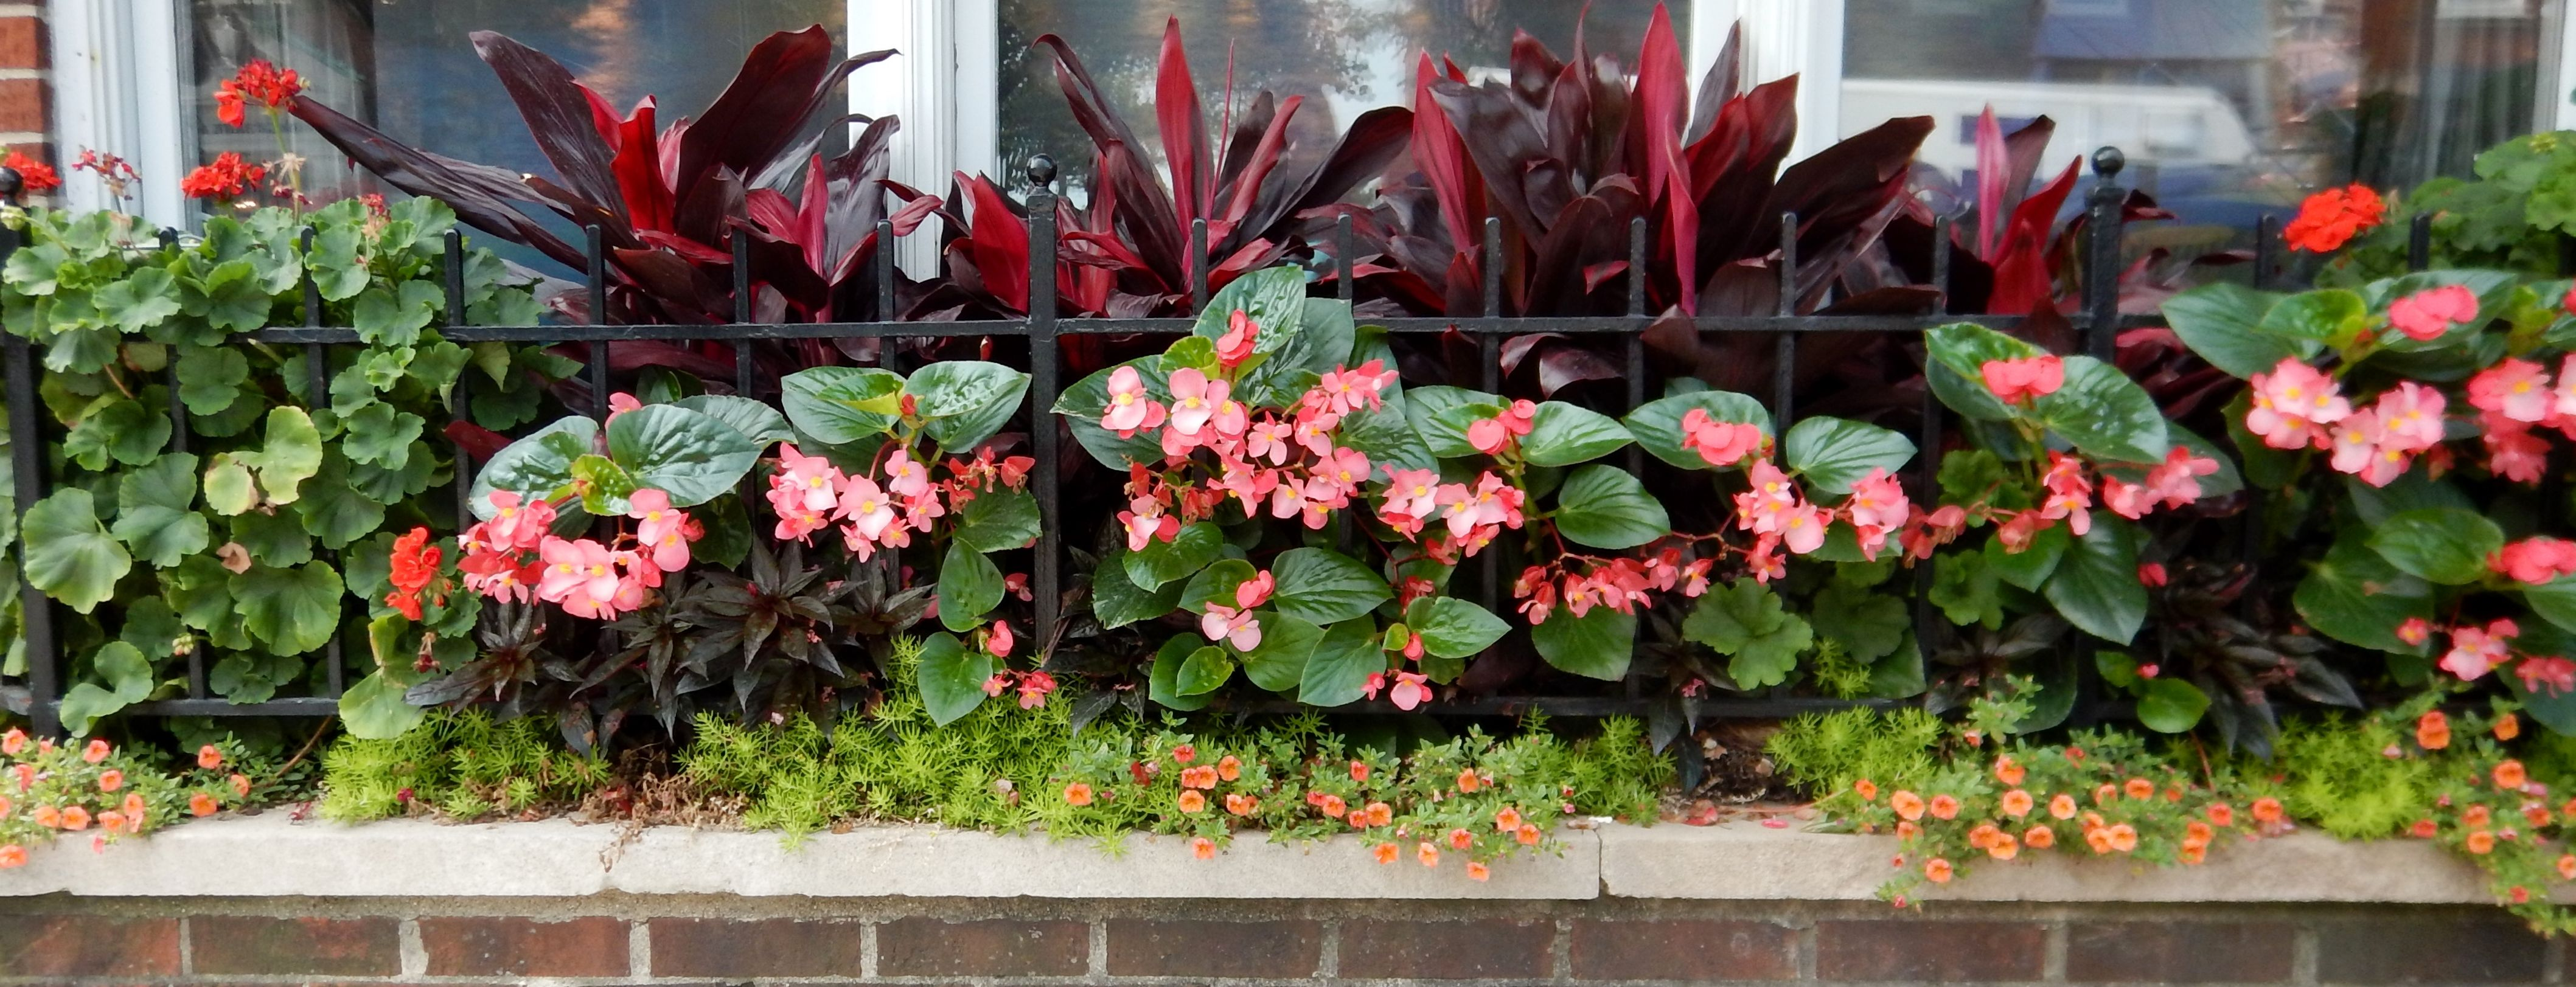 summer planting window box for one of our commercial clients